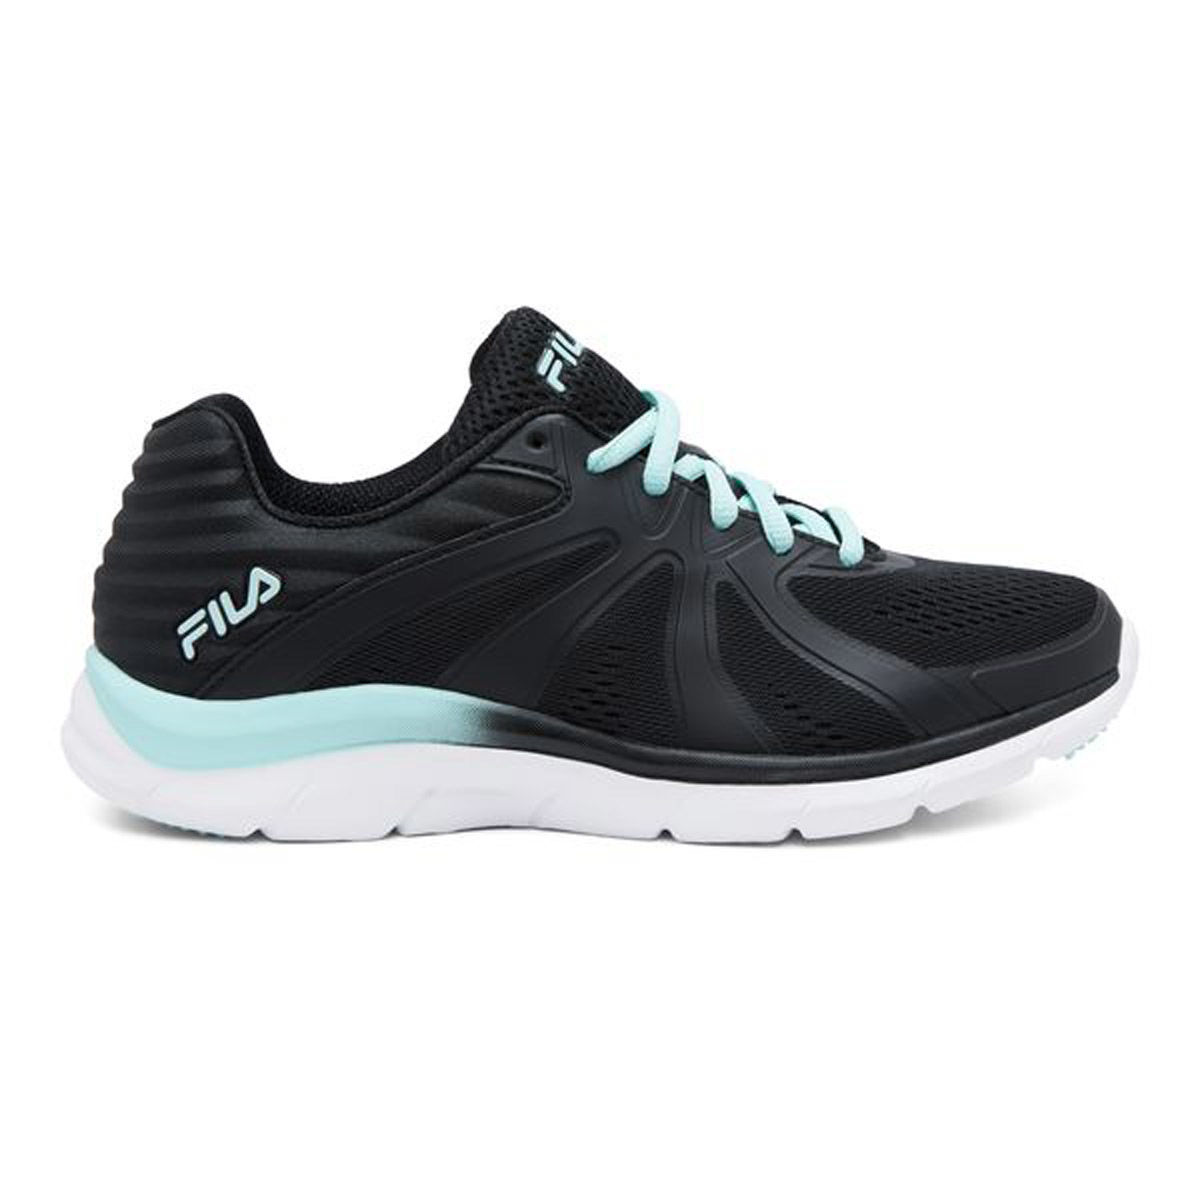 Fila Memory Fraction 3 Womens Running Shoe